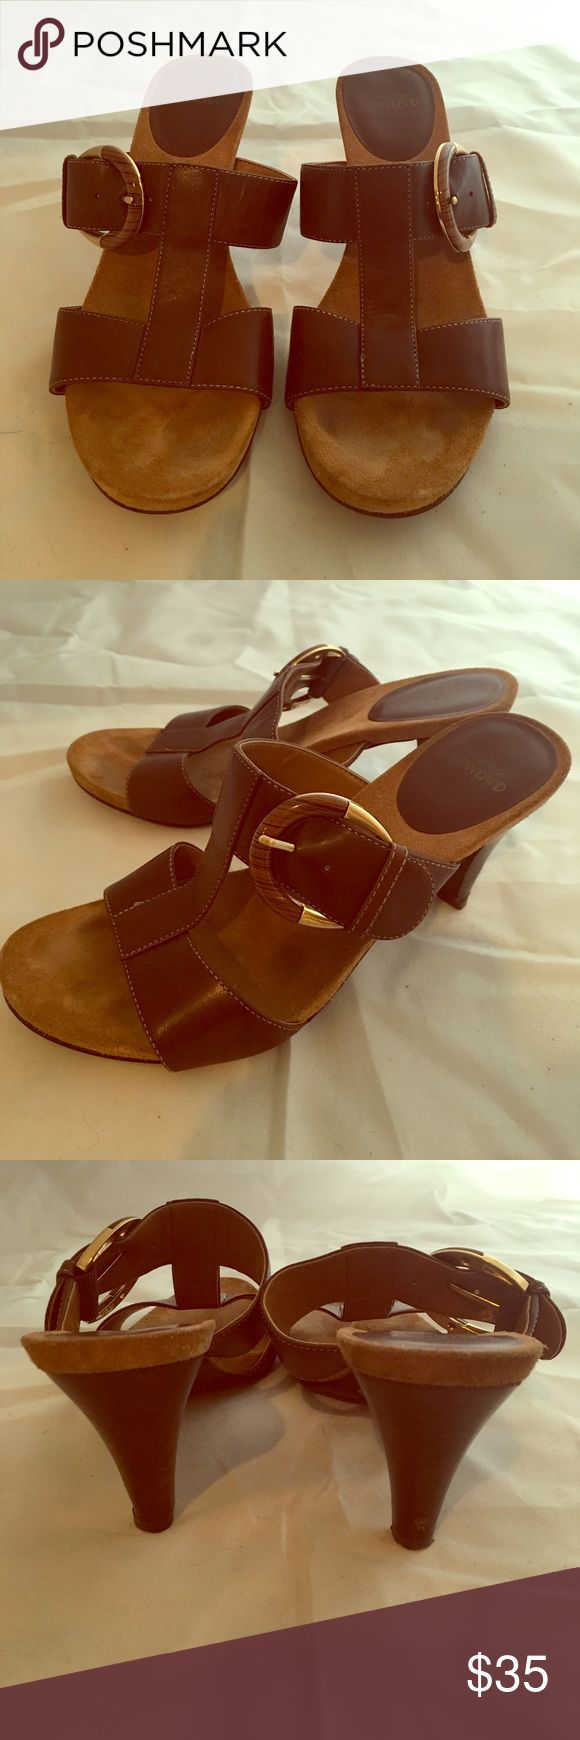 JOAN & DAVID HEELED SANDALS SIZE 7 1/2 Joan and David designer brown leather sandals. Open backs and T straps x two and ornamental Buckle  Size 7 1/2. Looks never to have been worn. Top grain leather.  3 inch heels Joan & David Shoes Sandals